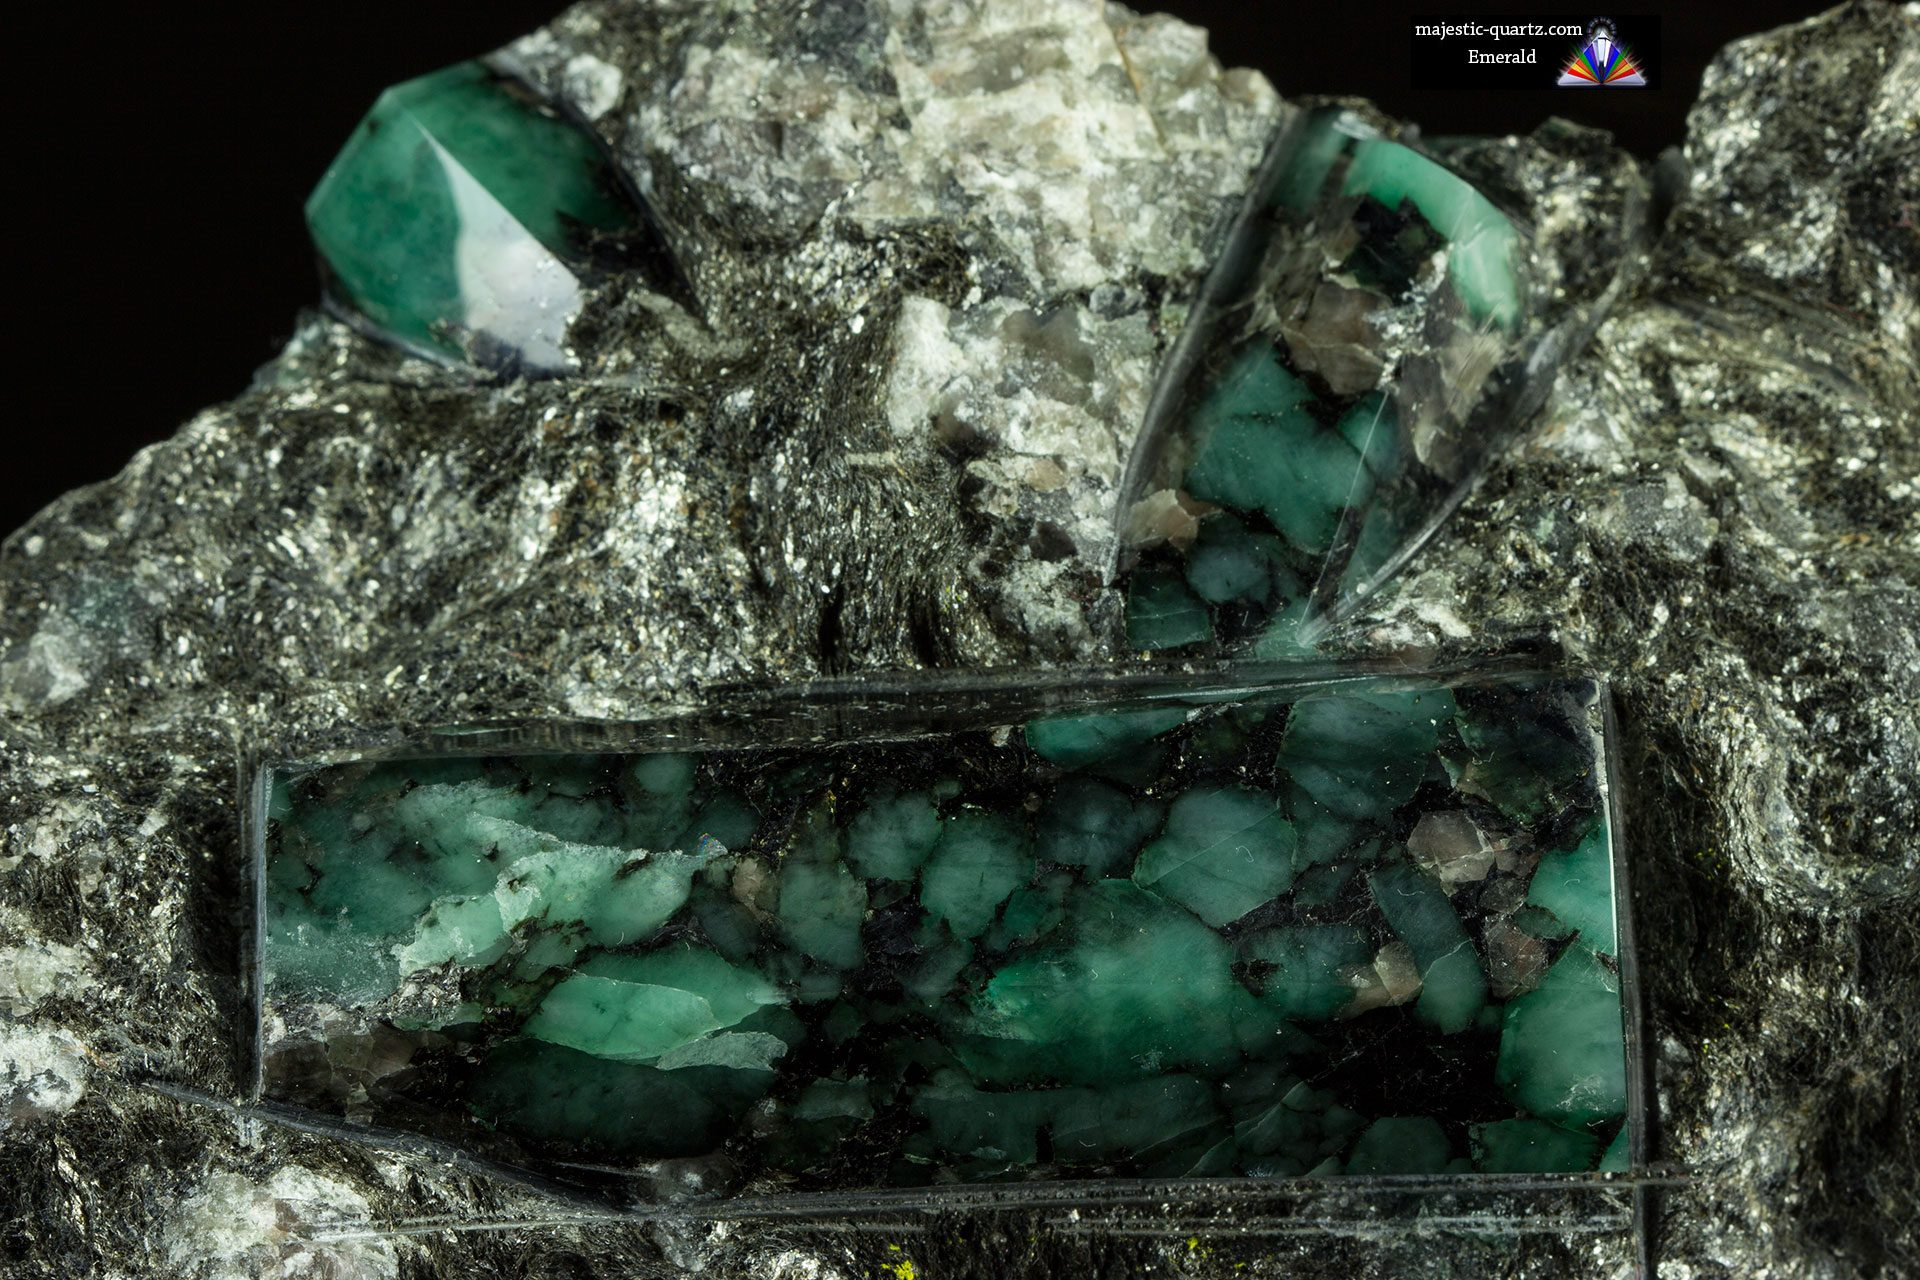 Polished Emerald on Matrix Crystal Specimen - Photograph by Anthony Bradford